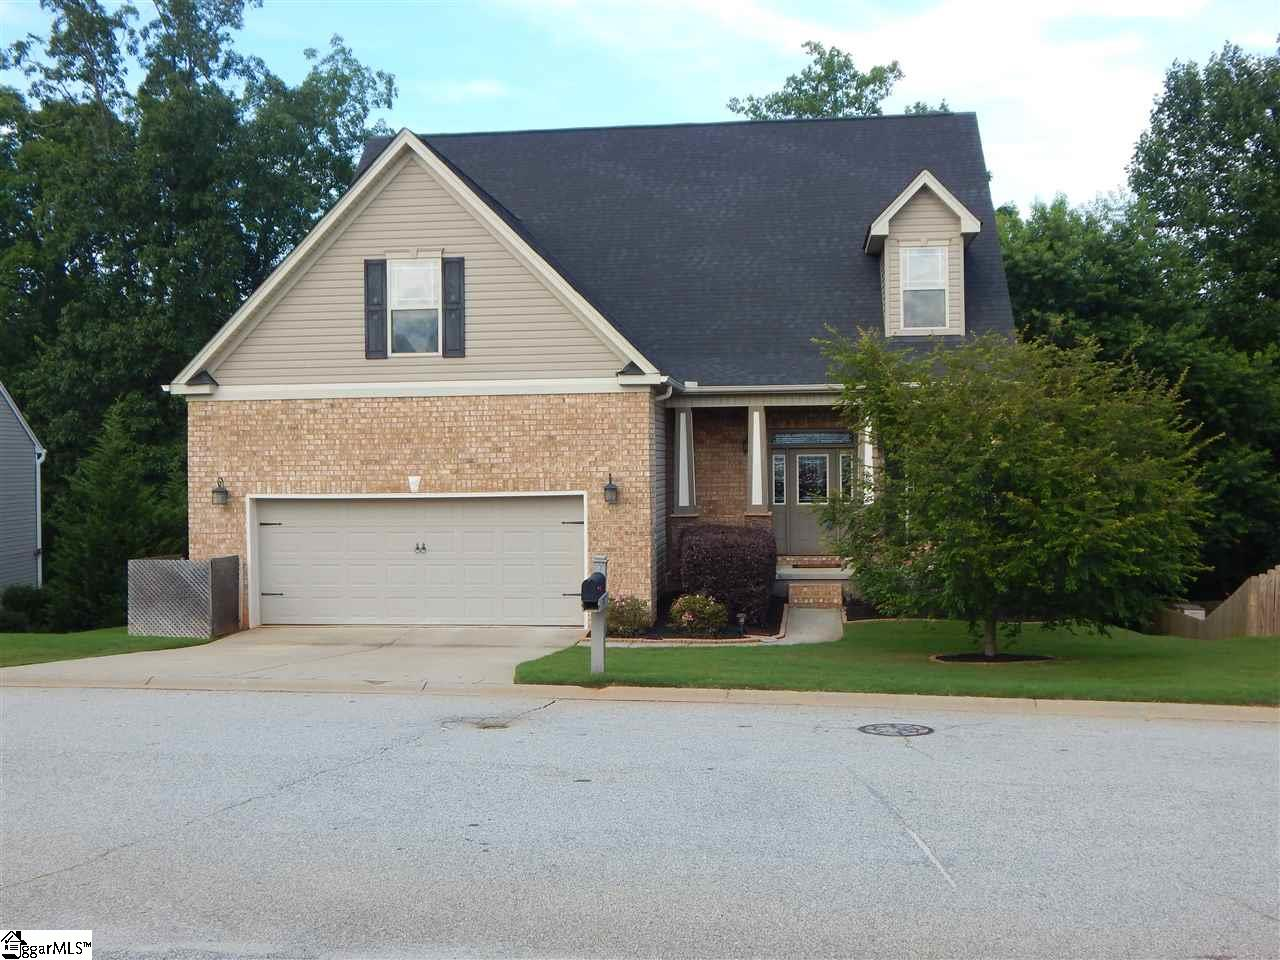 747 Waterbrook Lane, Greer, SC 29651